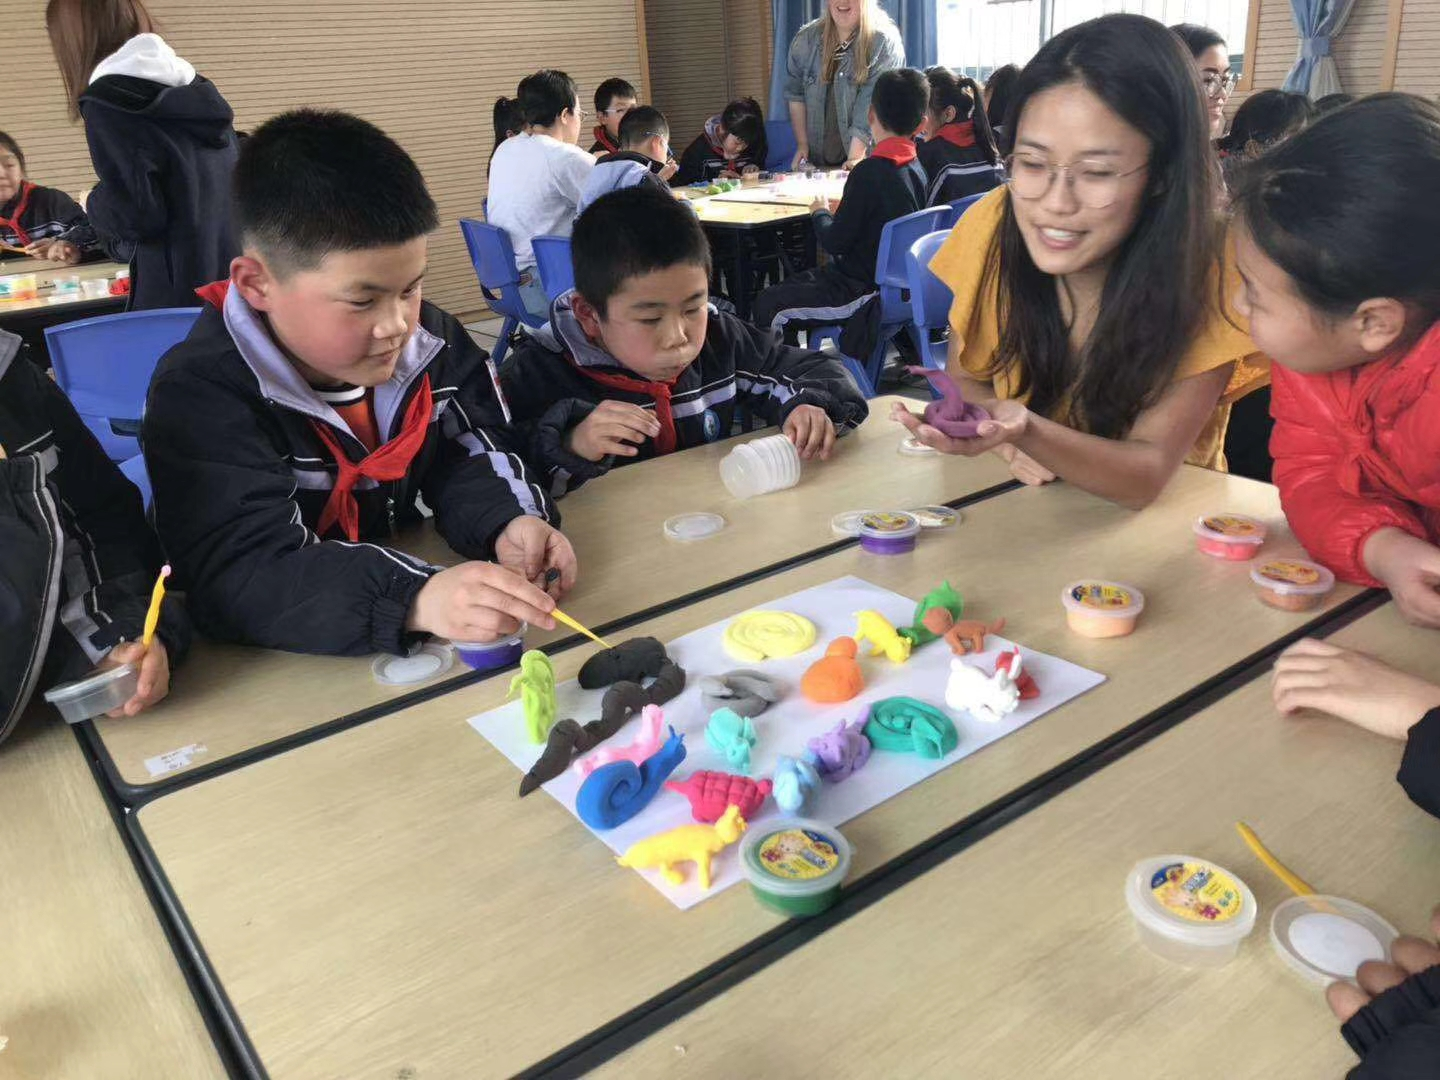 Xiaoyan leads students in an art therapy exercise